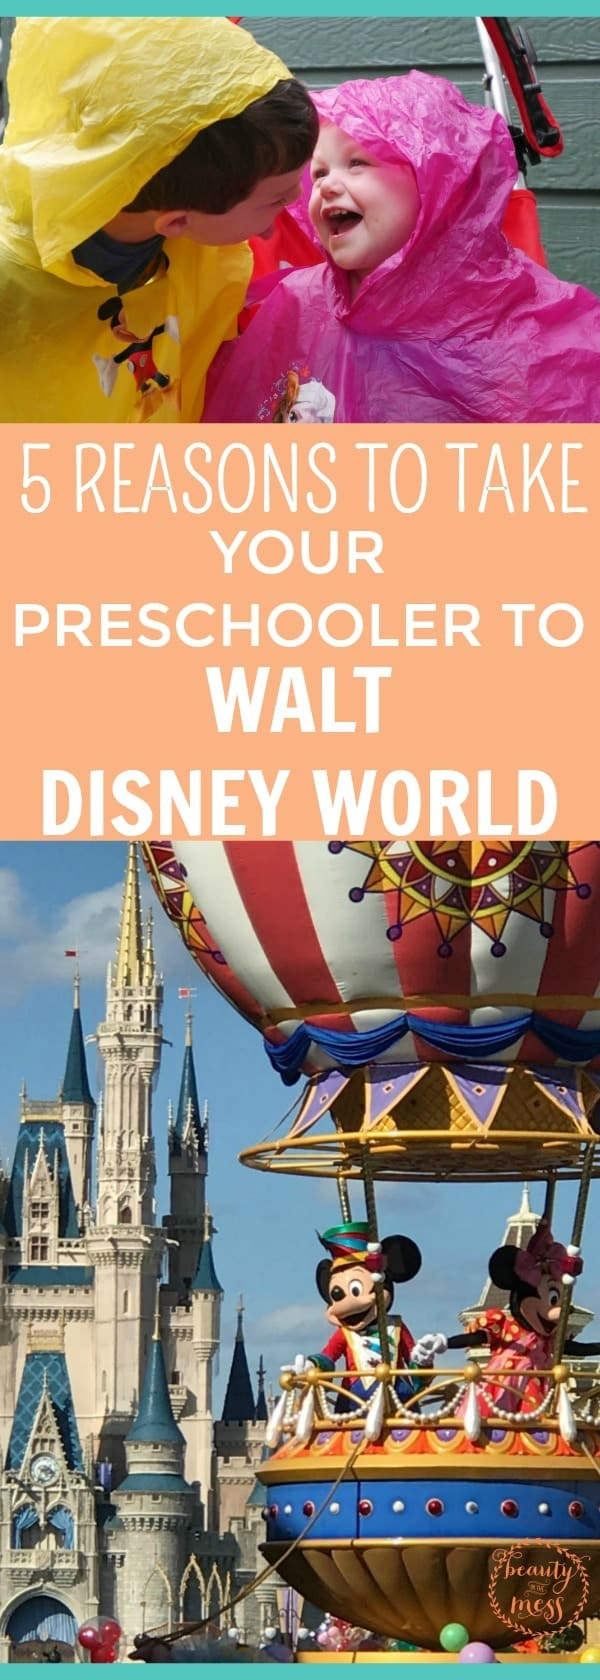 Want to plan a Walt Disney World® vacation? Have a preschooler? Are you asking yourself if you should take your preschooler to Walt Disney World®? Here's what you need to know. Don't miss these 5 reasons we don't regret taking our preschoolers and why you should consider it!  via @simplifyingfamily